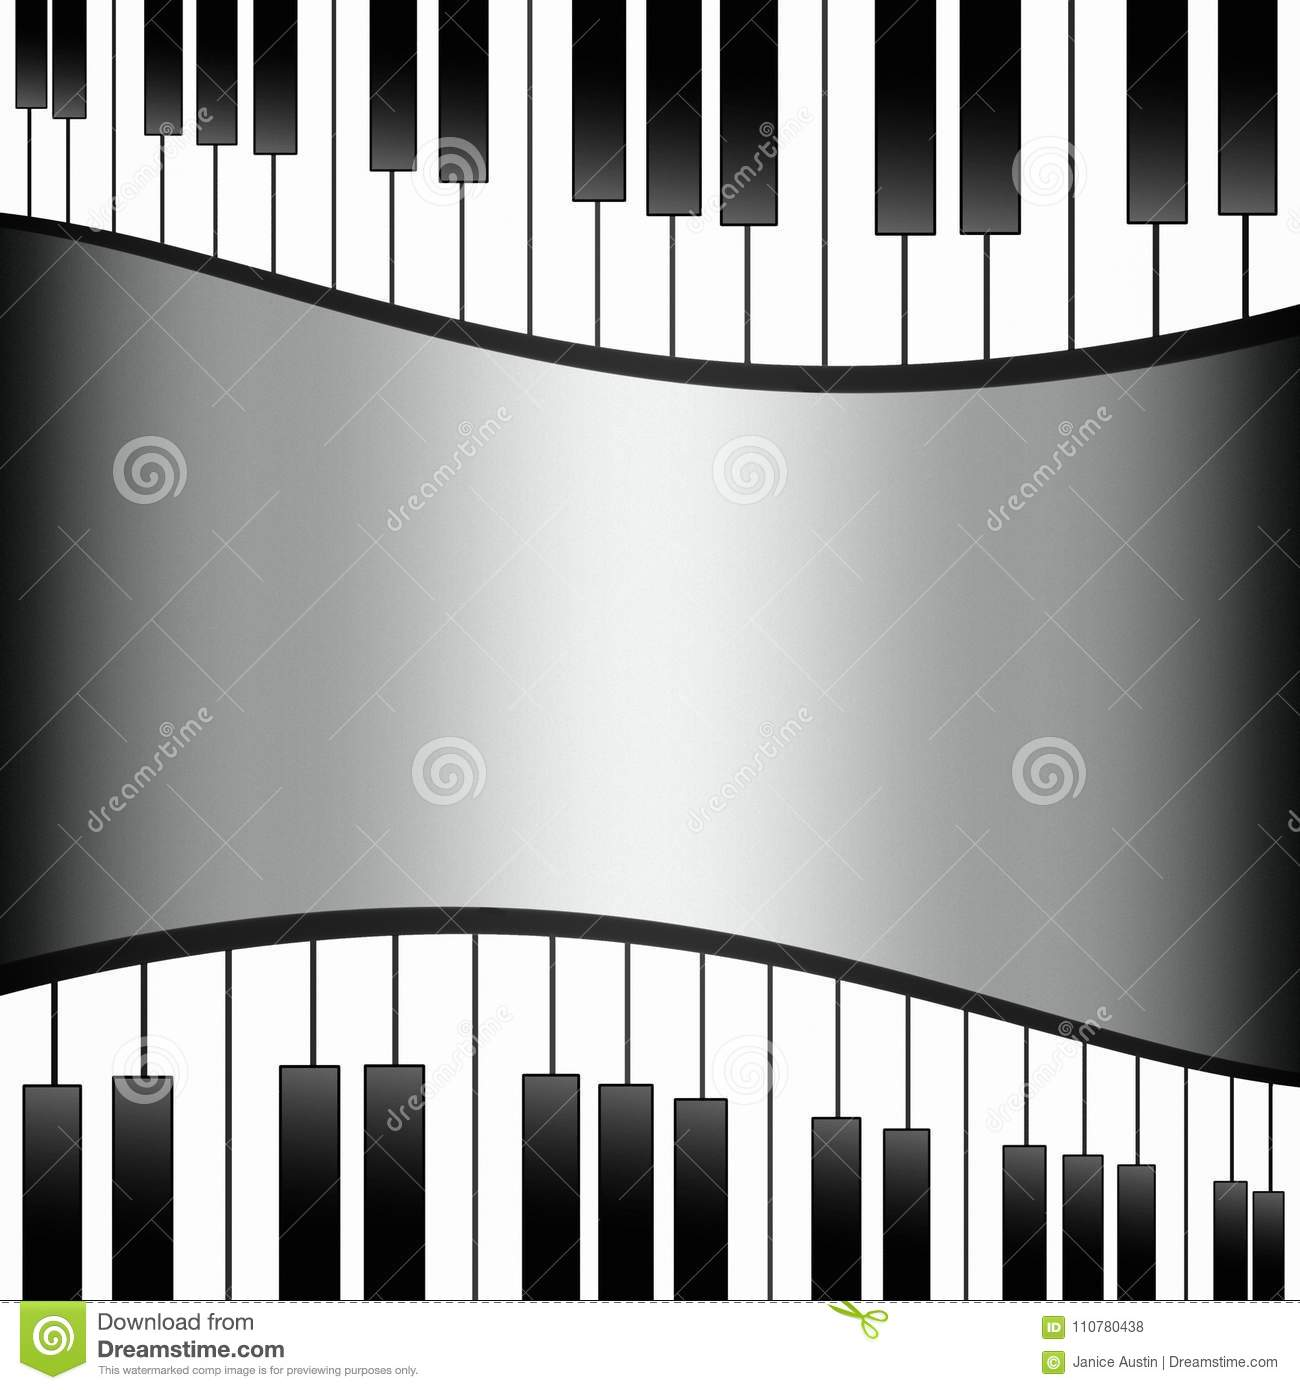 Piano Background Music: Black And White Piano Keys Background Wallpaper Template